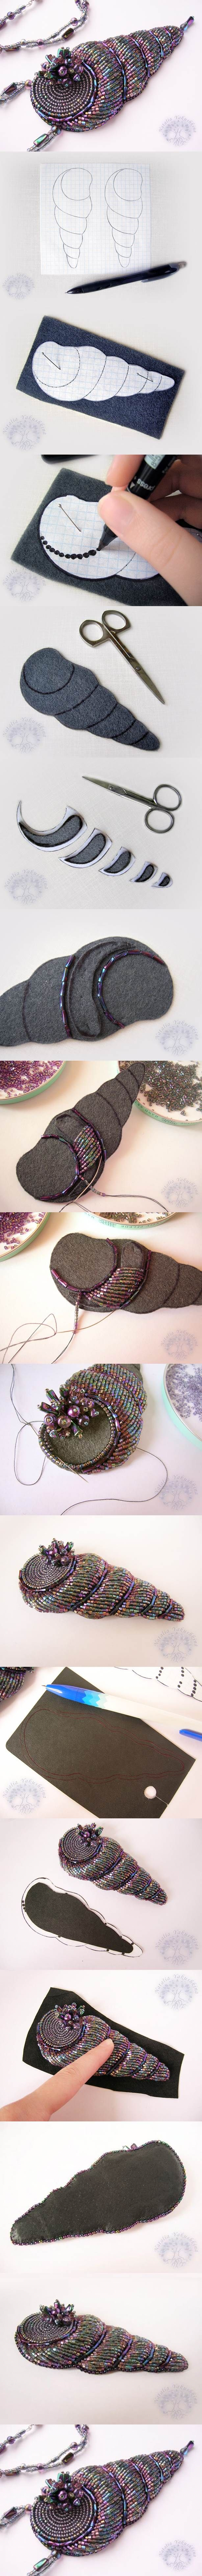 DIY Beaded Spiral Shell Pendant | iCreativeIdeas.com Like Us on Facebook ==> https://www.facebook.com/icreativeideas